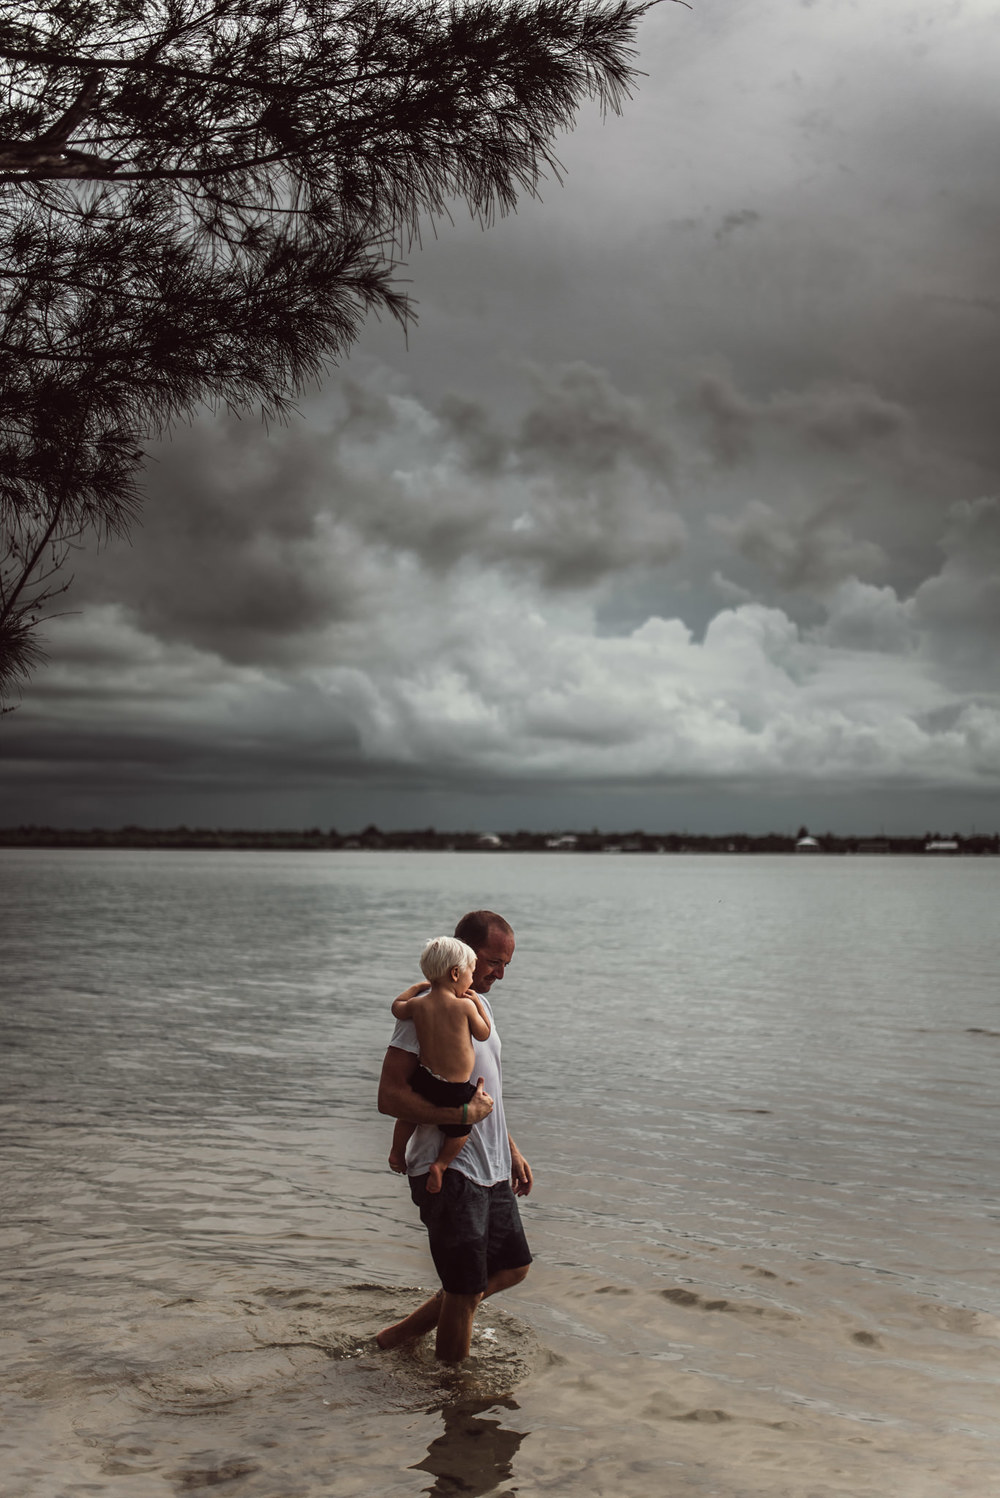 twyla jones photography - treasure coast florida - island family session-4847.jpg